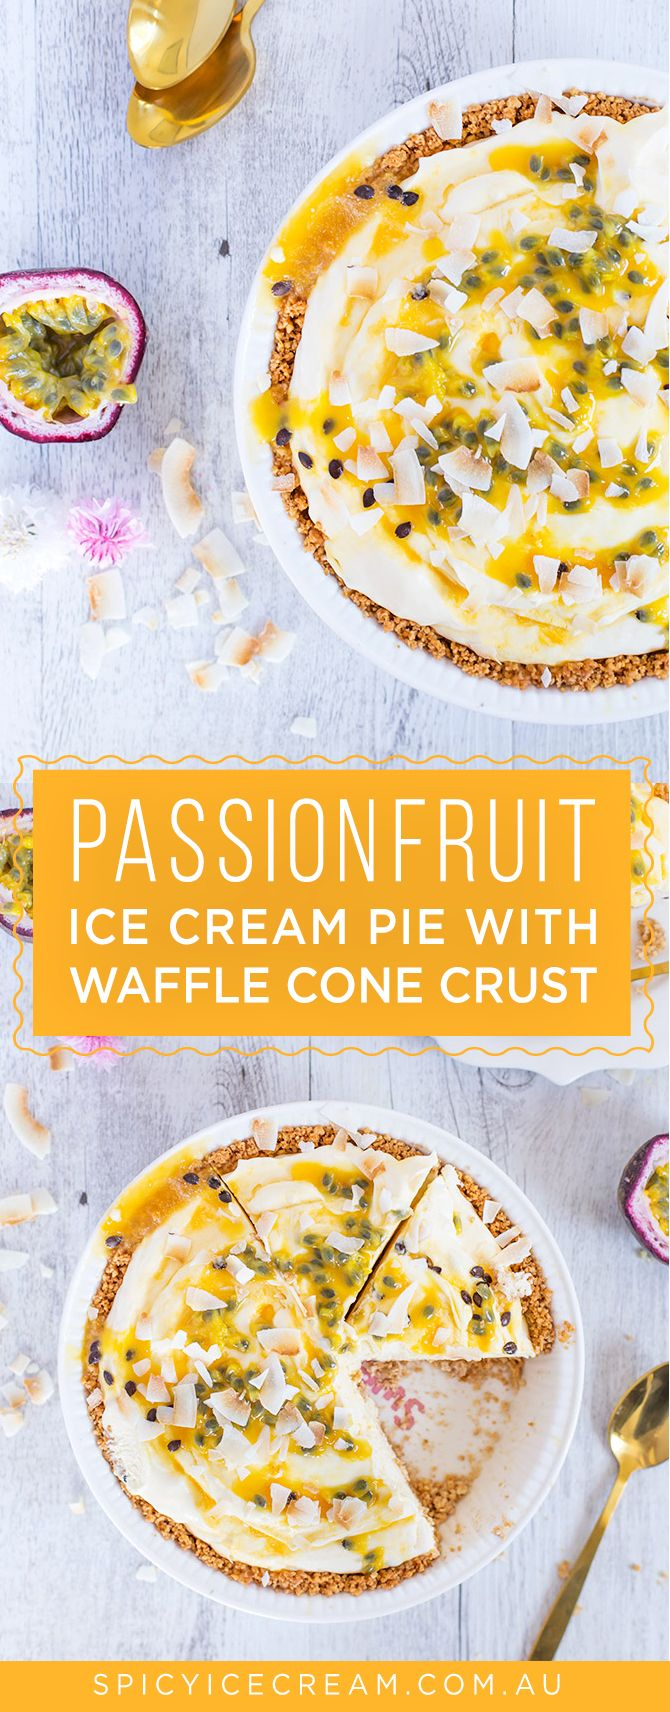 No Churn White Chocolate & Passionfruit Ice Cream in a Waffle Cone Crust. If you're looking for a delicious and easy recipe for Australia Day, this is it my friends! Click through for the full recipe.